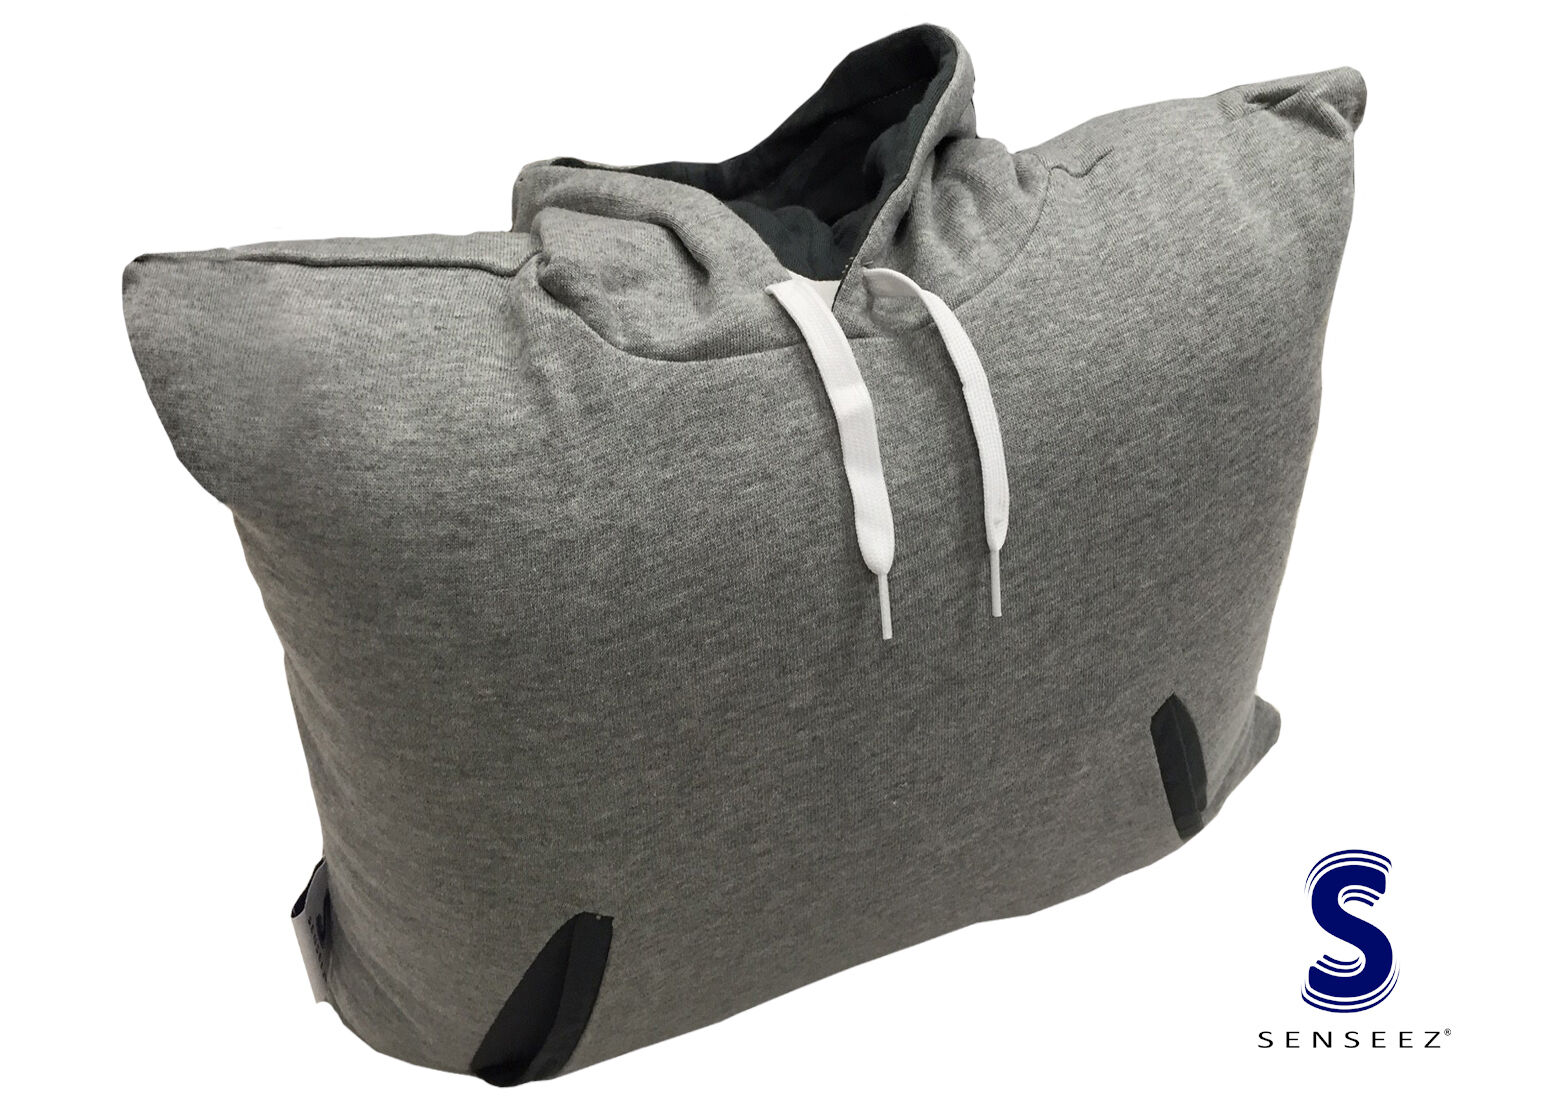 Hoodie Vibrating Pillow a great way to provide tactile input